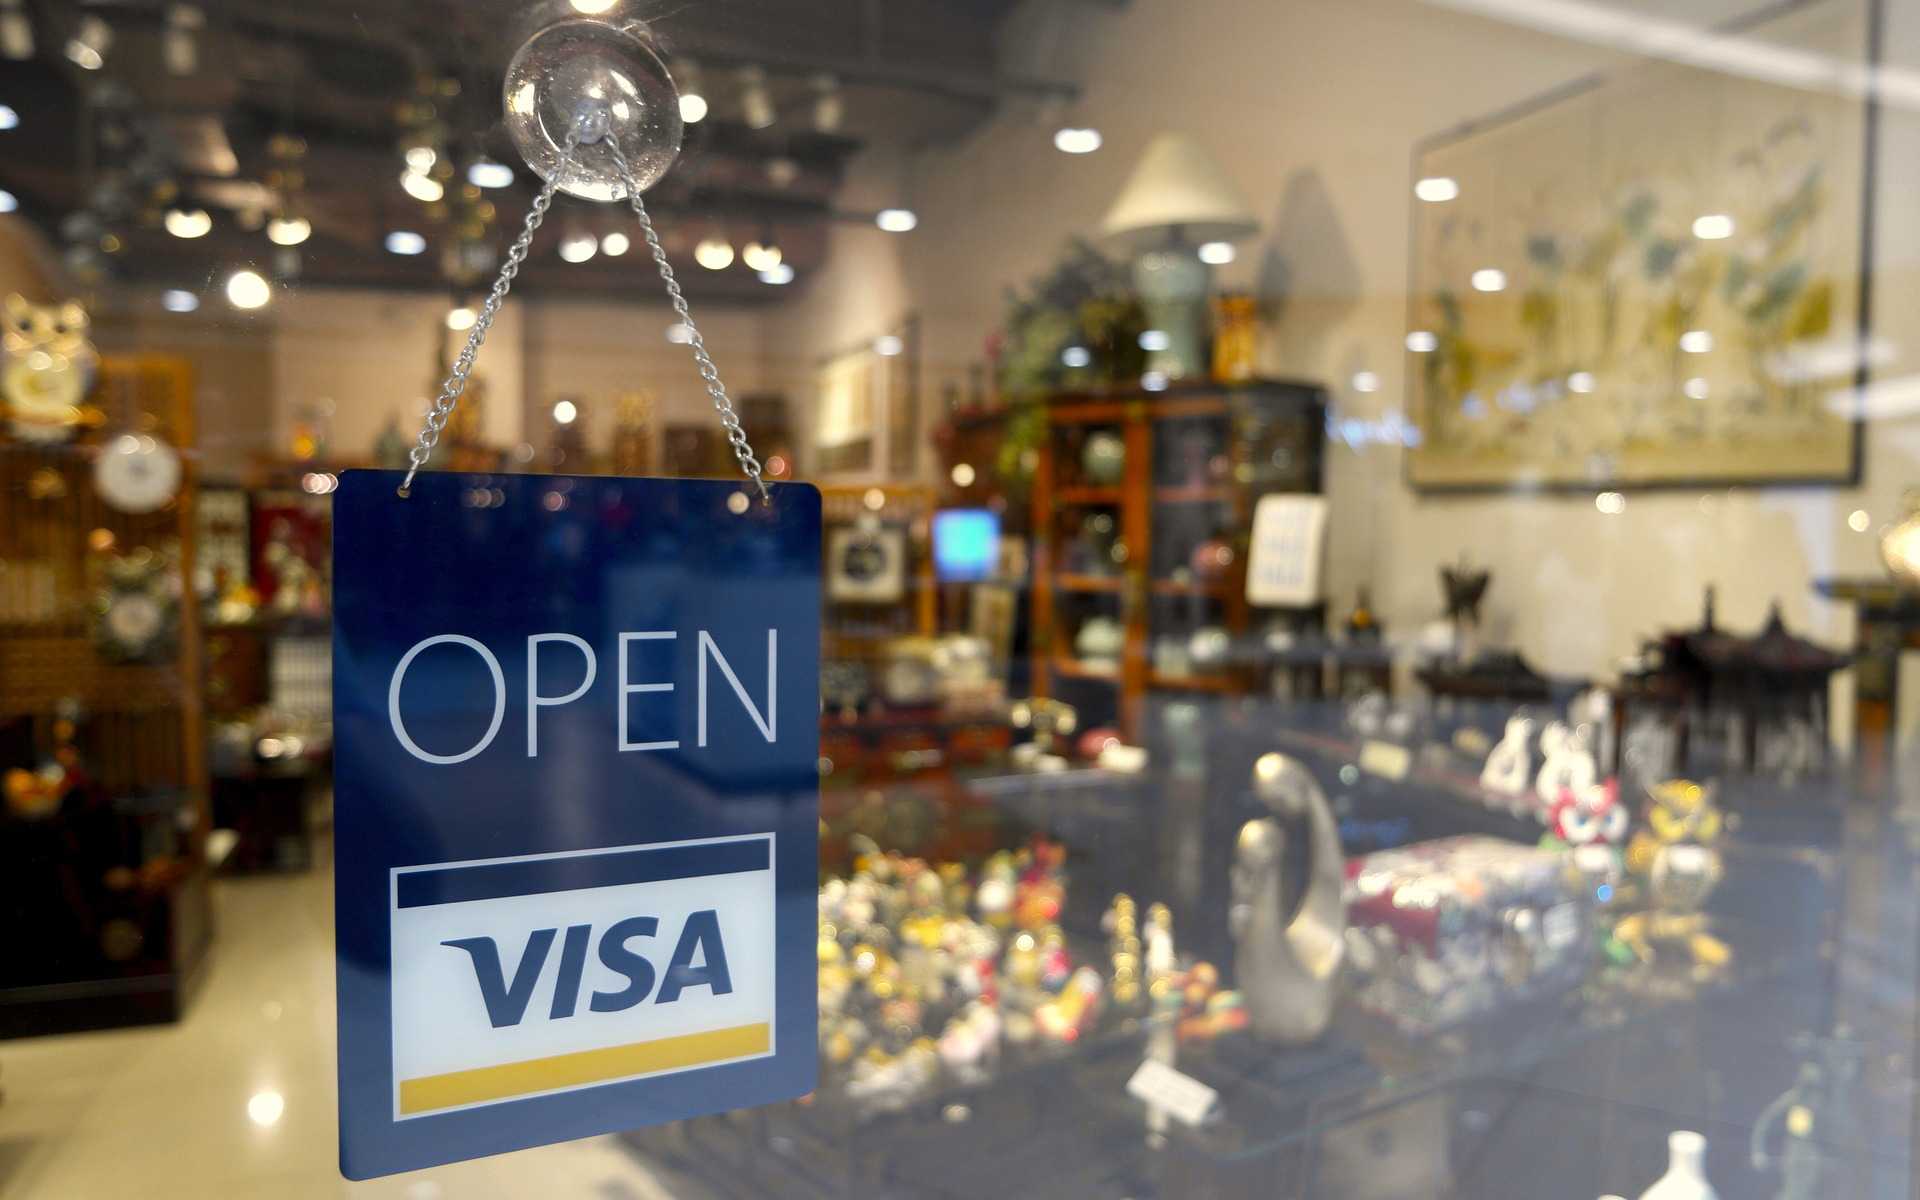 Payment Company Acquisitions Start the Year with a Bang as Visa Buys Plaid